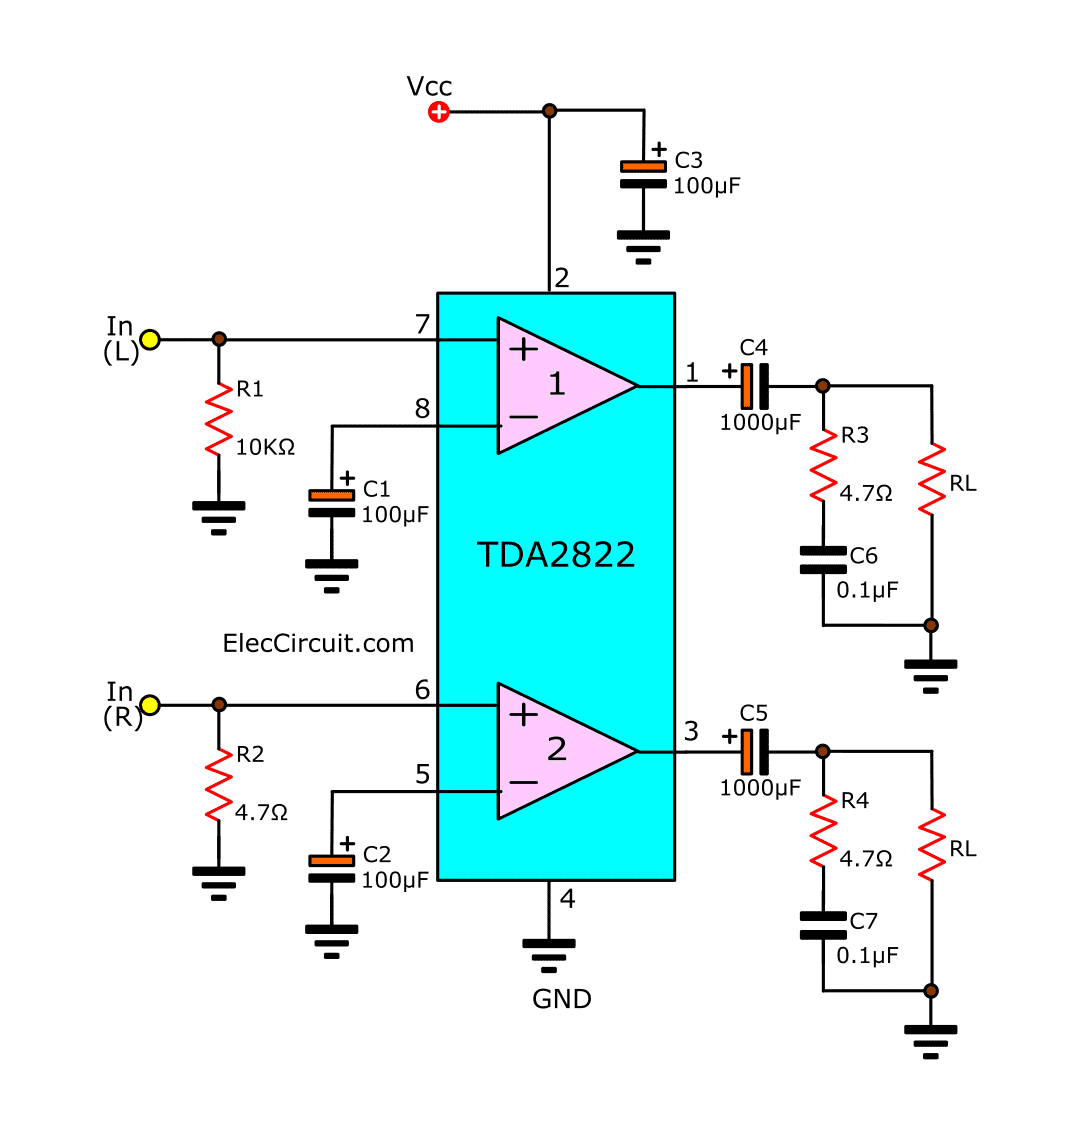 pcb-and-components-layout